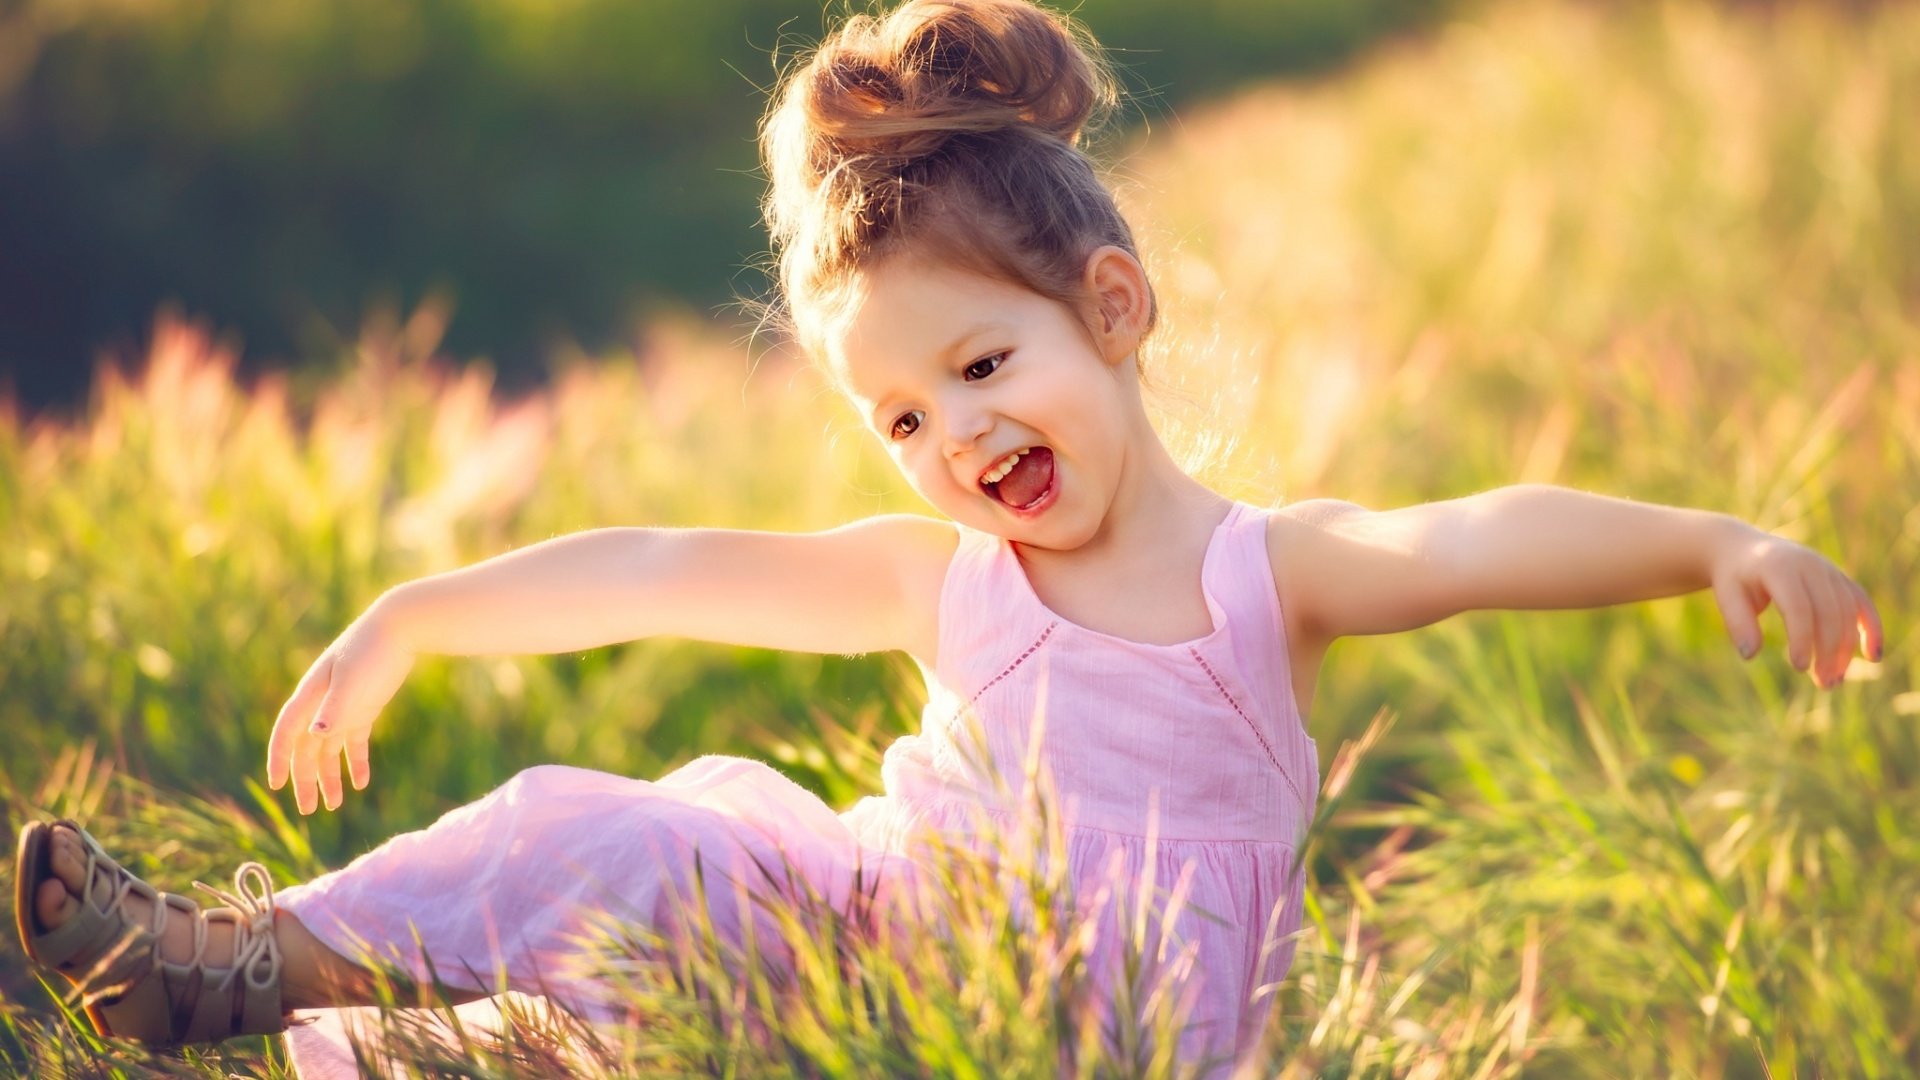 Free Download Of Love Wallpapers With Quotes Happy Girl In Meadow Wallpapers 1920x1080 458247